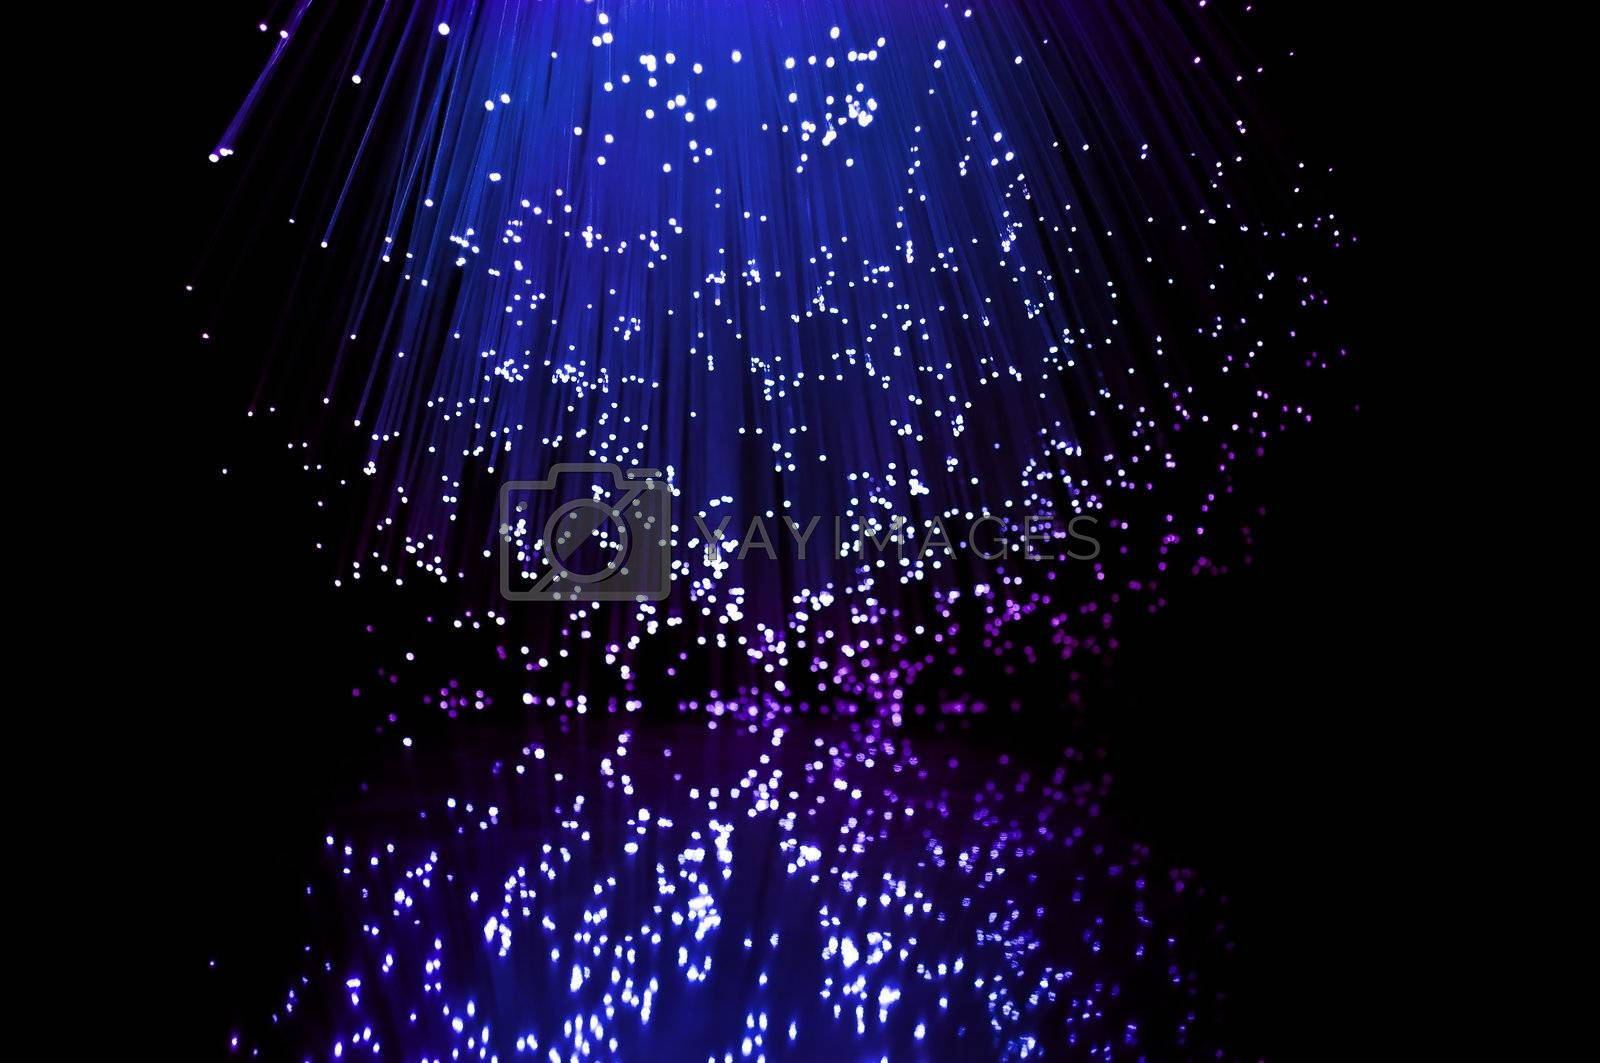 Blue and violet fibre optic light strands reflecting in the foreground.